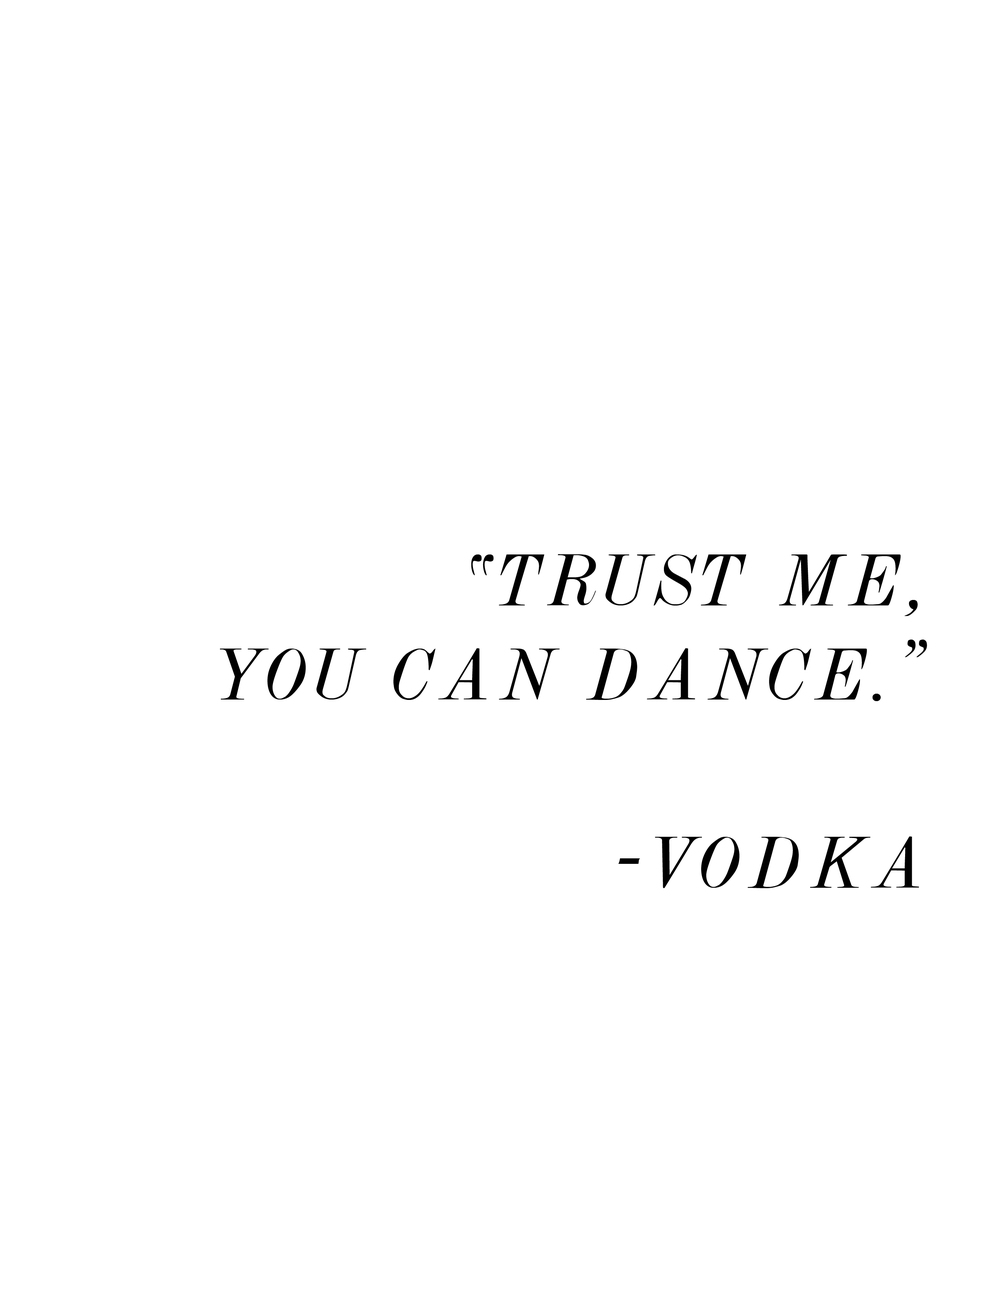 trust me, you can dance 2.jpg